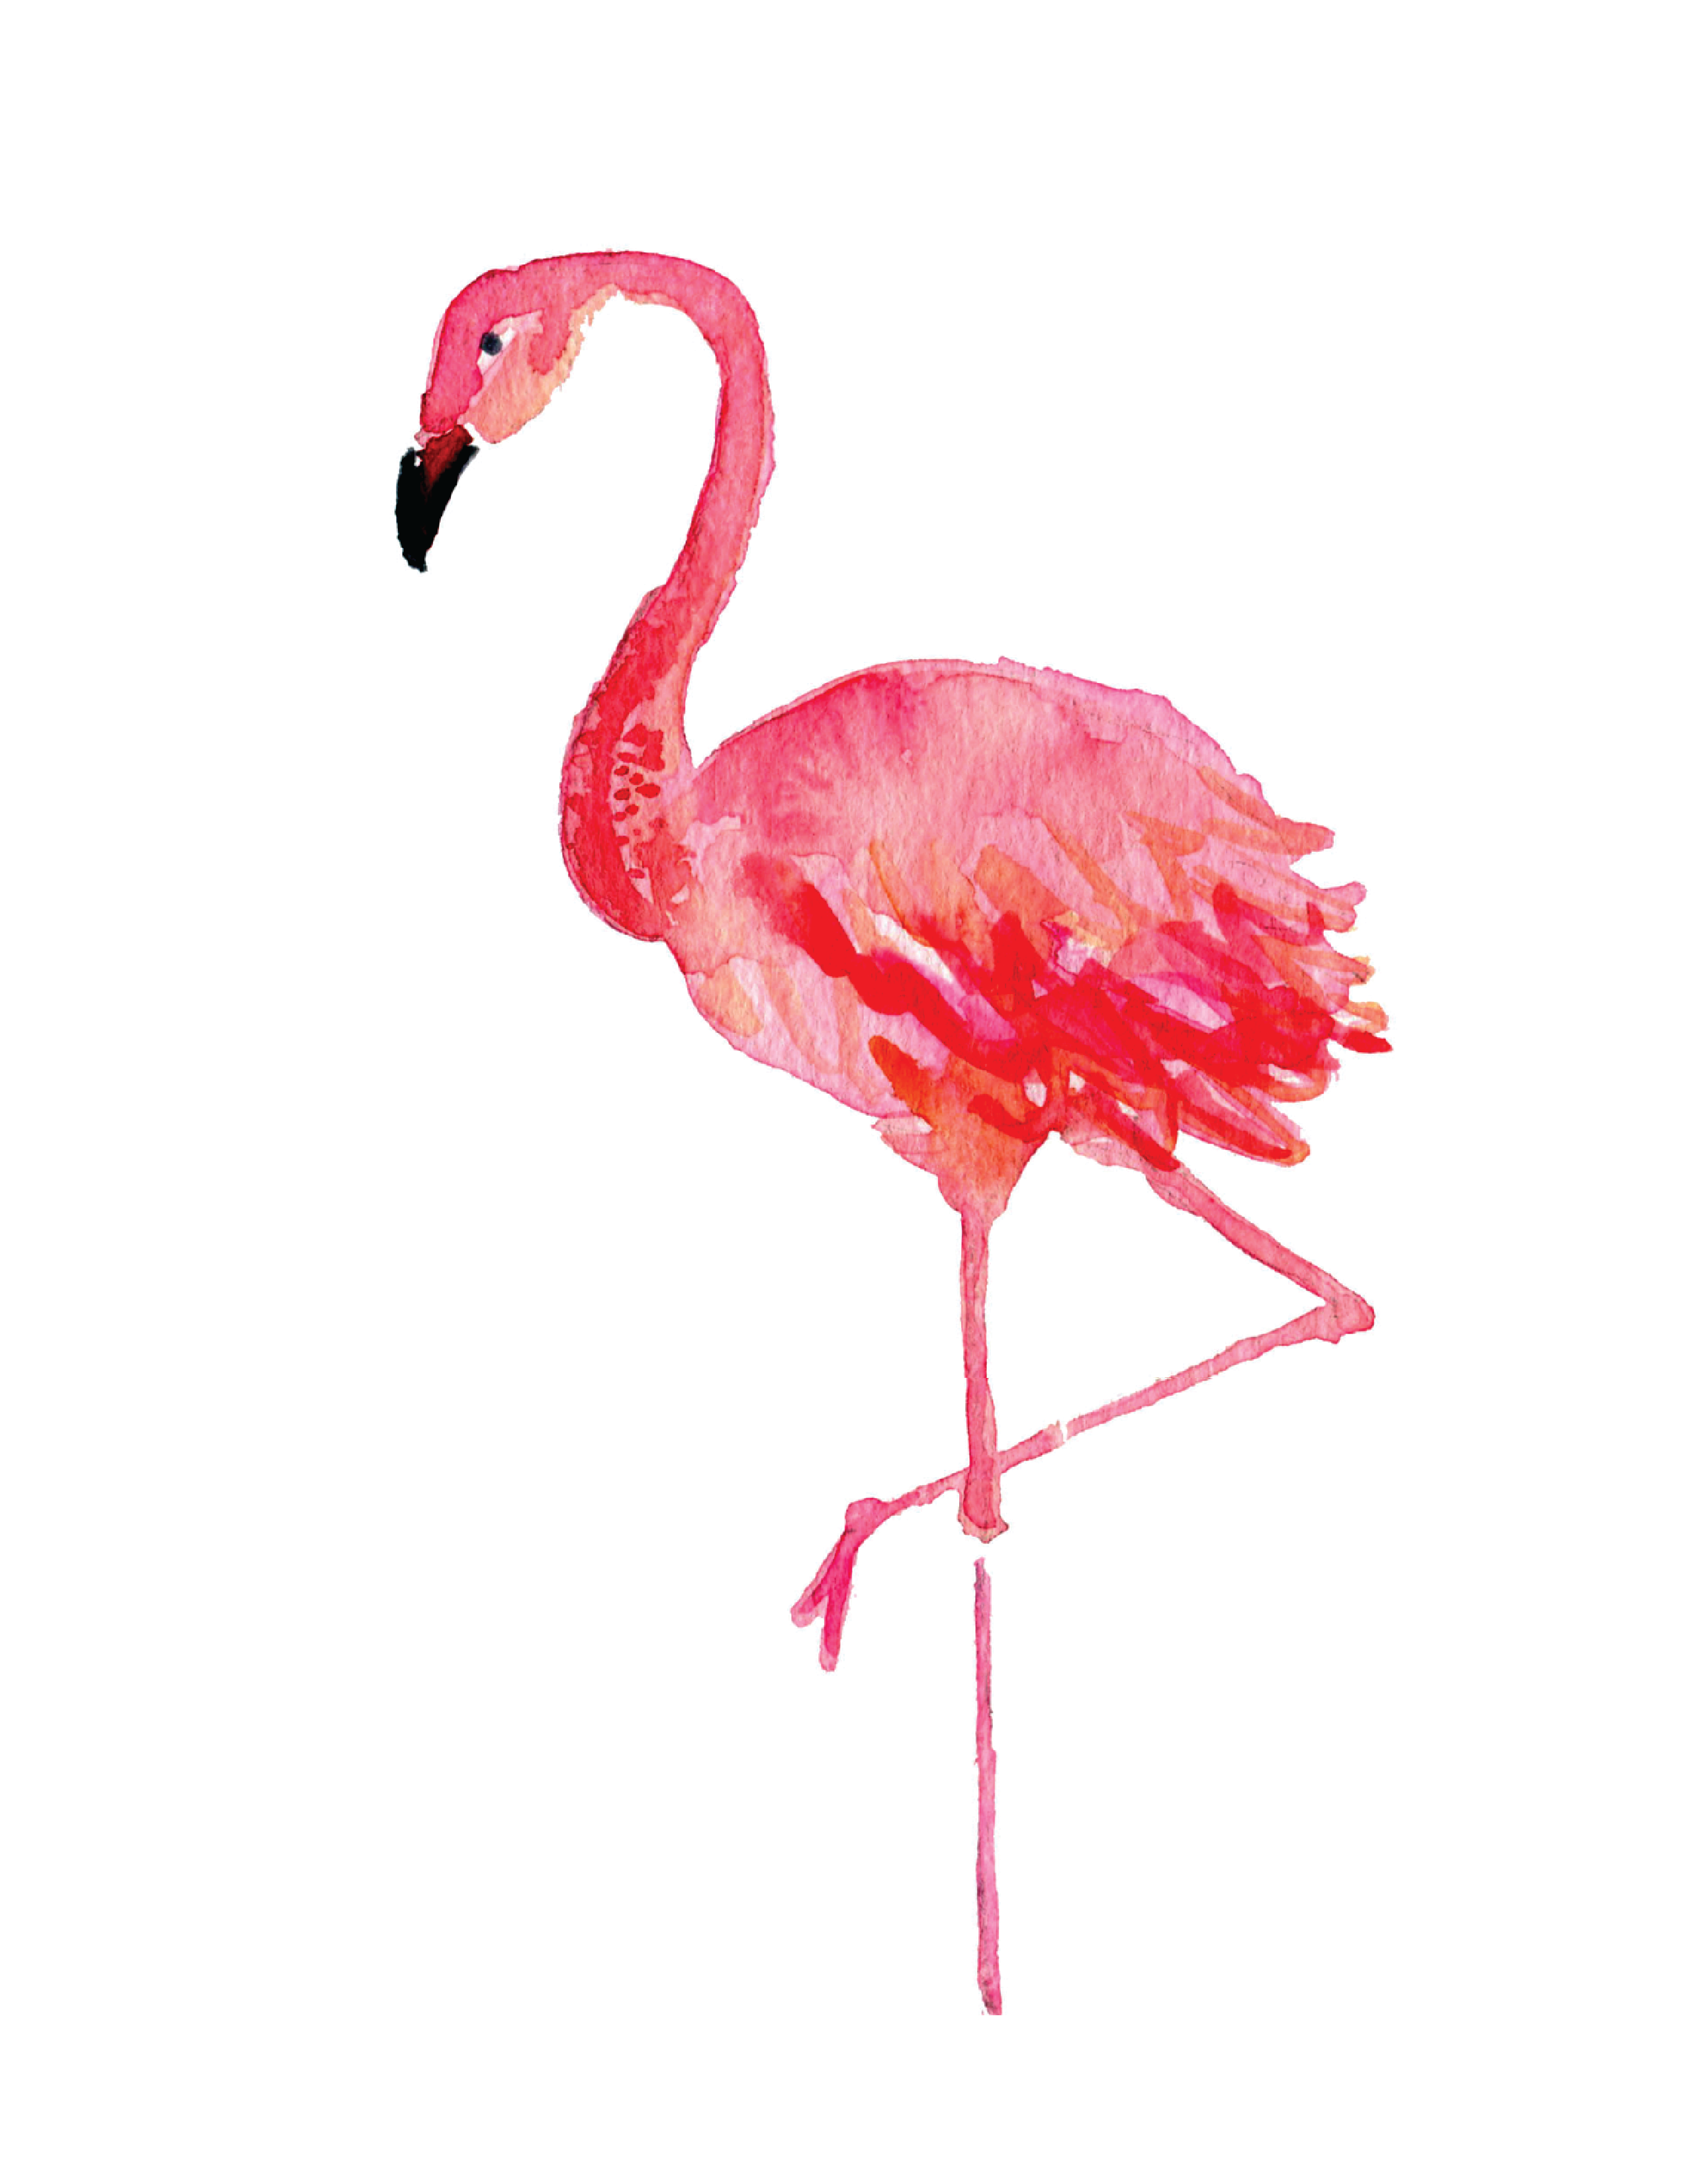 High Resolution Wallpaper | Flamingo 2550x3300 px